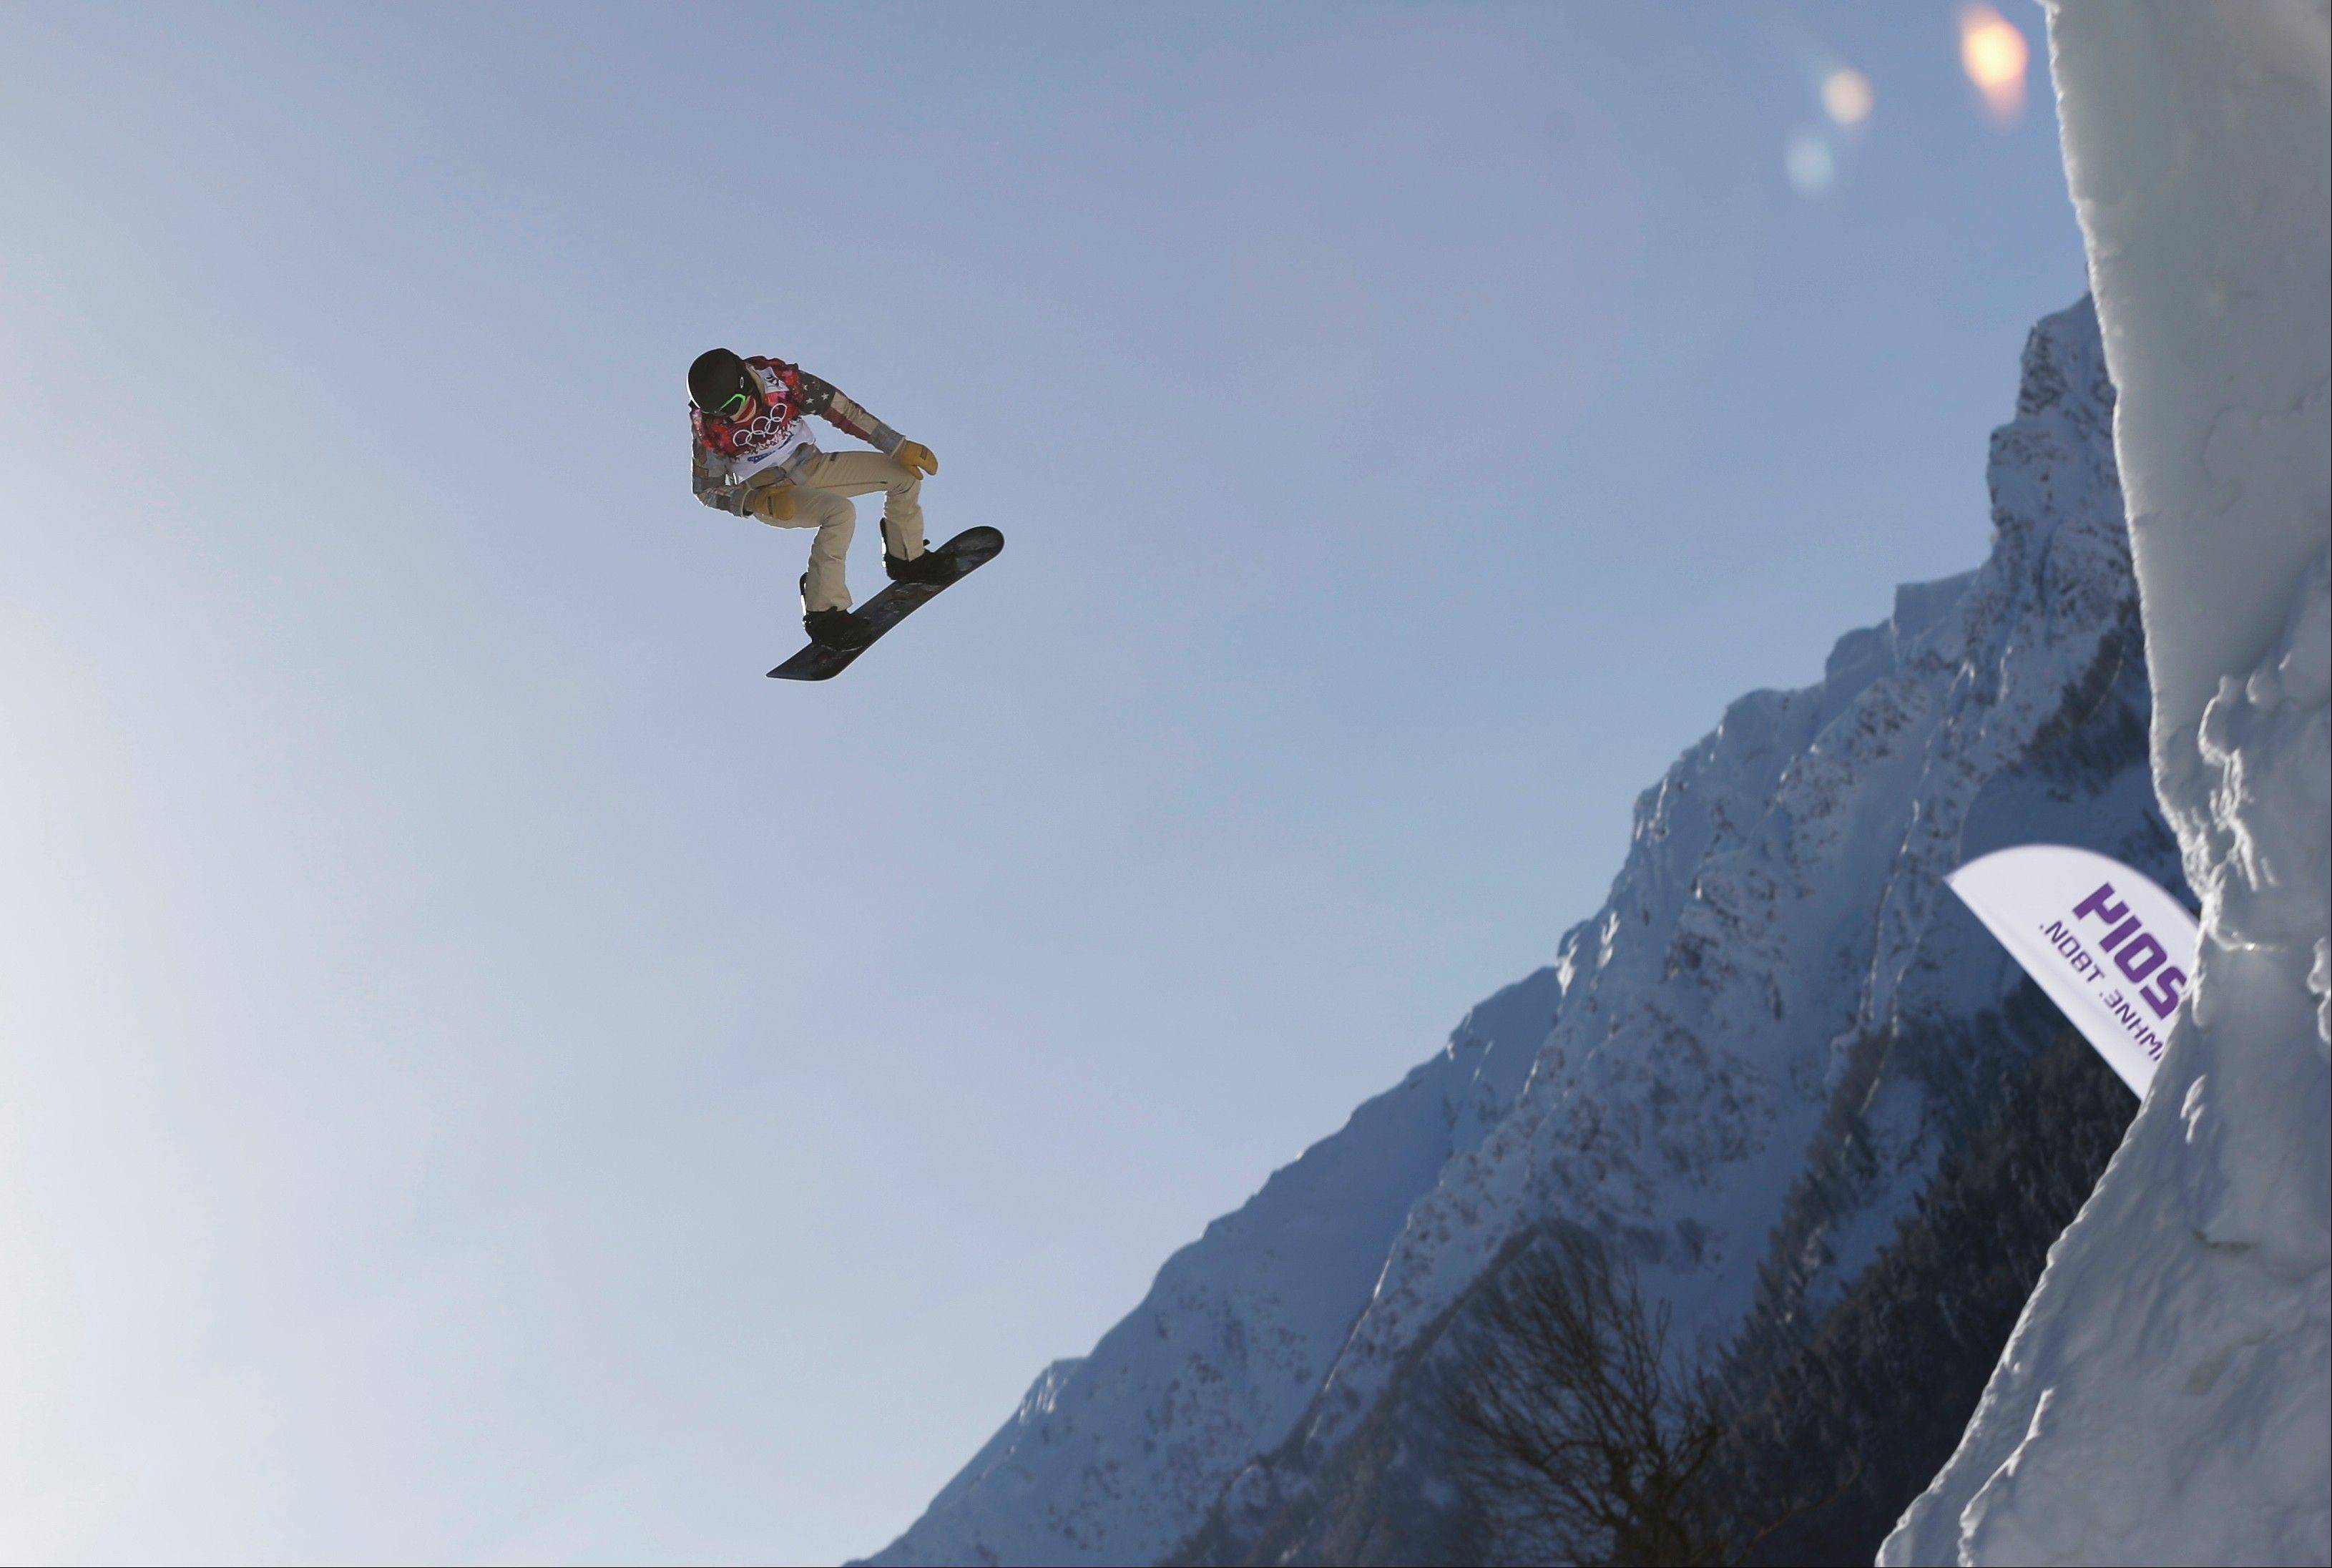 Shaun White of the United States takes a jump during a Snowboard Slopestyle training session at the Rosa Khutor Extreme Park in Krasnaya Polyana, Russia, prior to the 2014 Winter Olympics. White said Wednesday, Feb. 5, that he is pulling out of the Olympic slopestyle contest to focus solely on winning a third straight gold medal on the halfpipe.